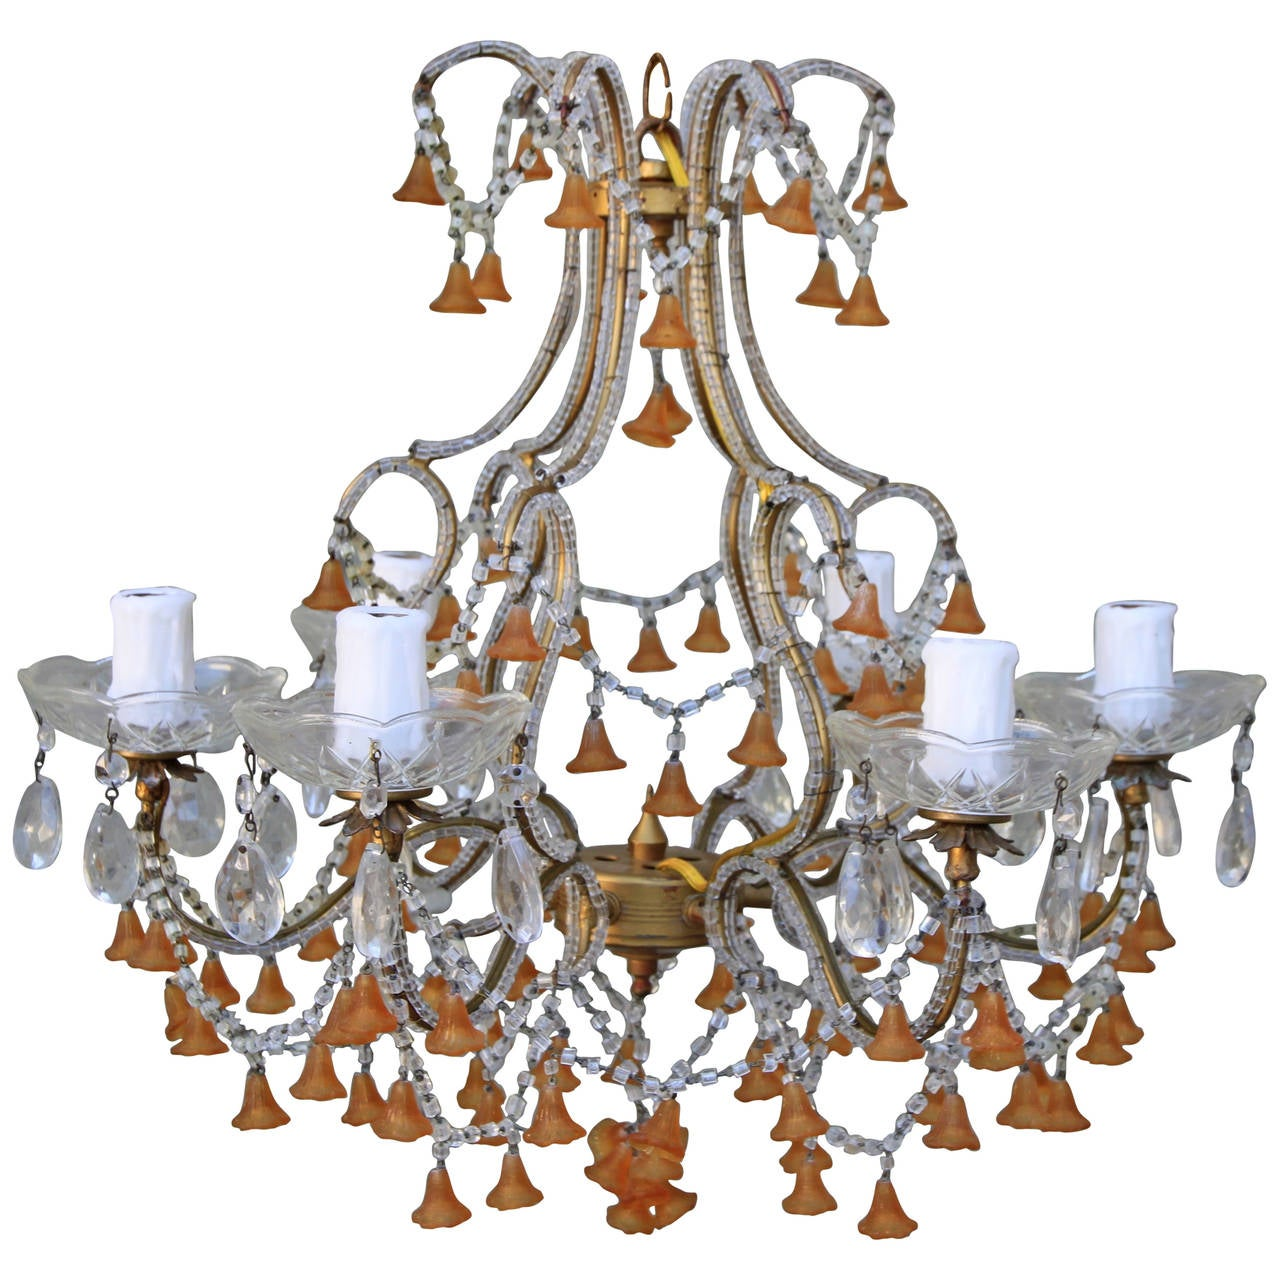 Murano Chandelier Color: Six-Light Amber Colored Murano Glass Chandelier For Sale